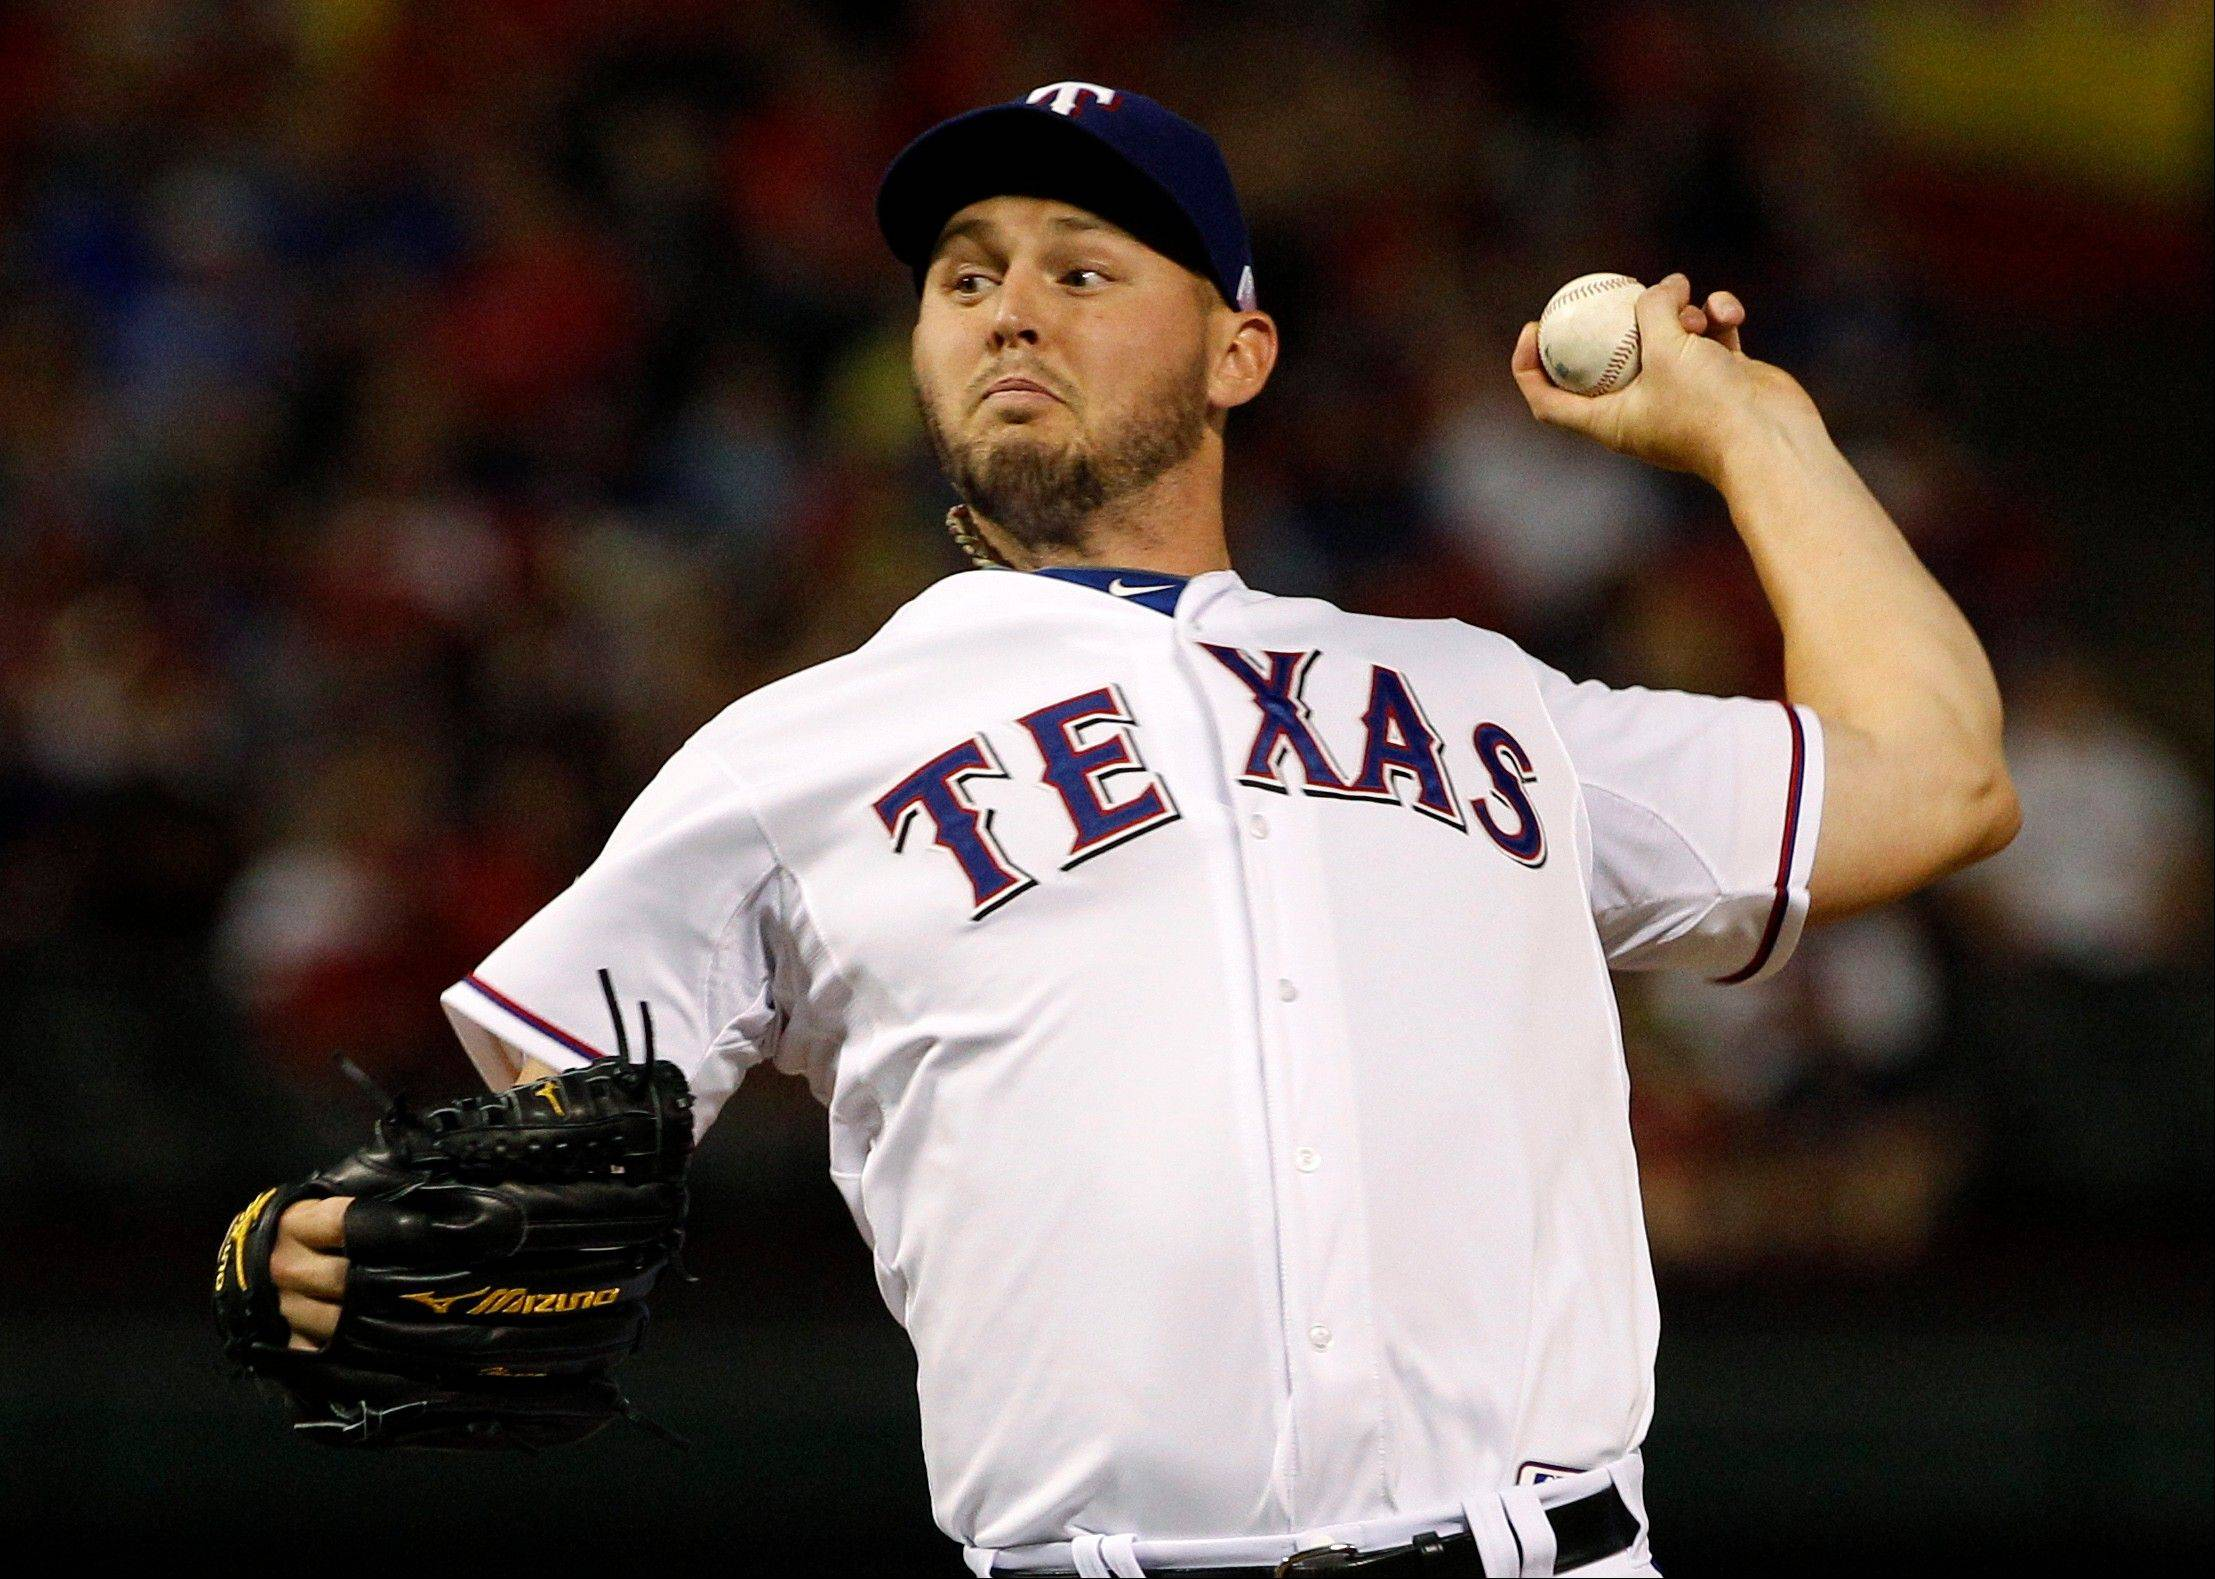 Texas Rangers starting pitcher Matt Harrison didn't allow a runner until the fourth and struck out six Tuesday in a home win over Cleveland.